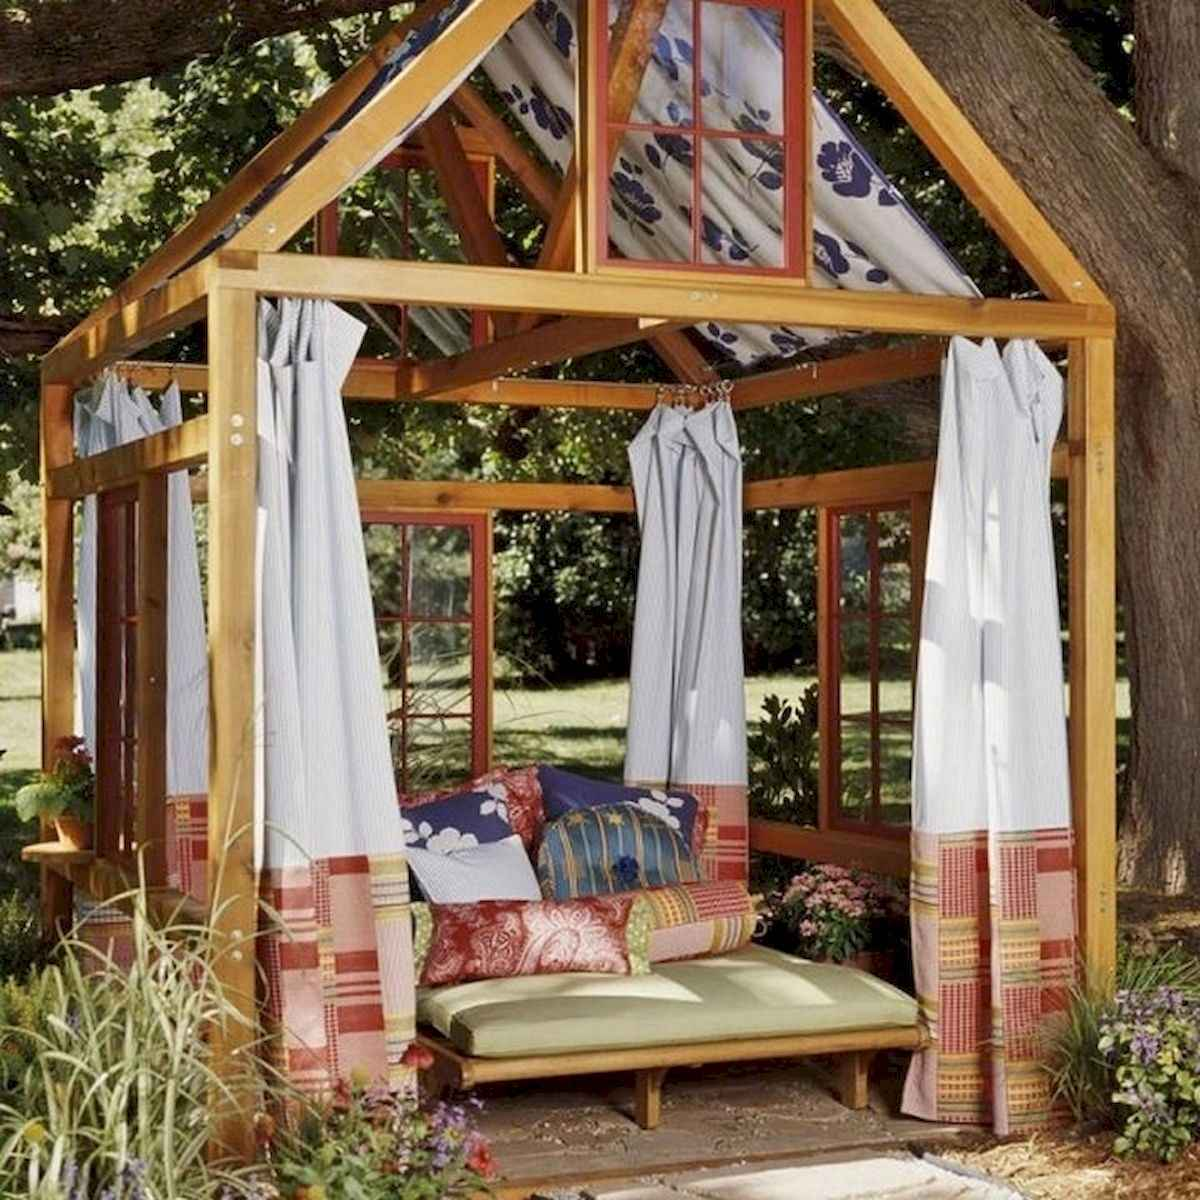 80 DIY Summery Backyard Projects Ideas Make Your Summer Awesome (8)